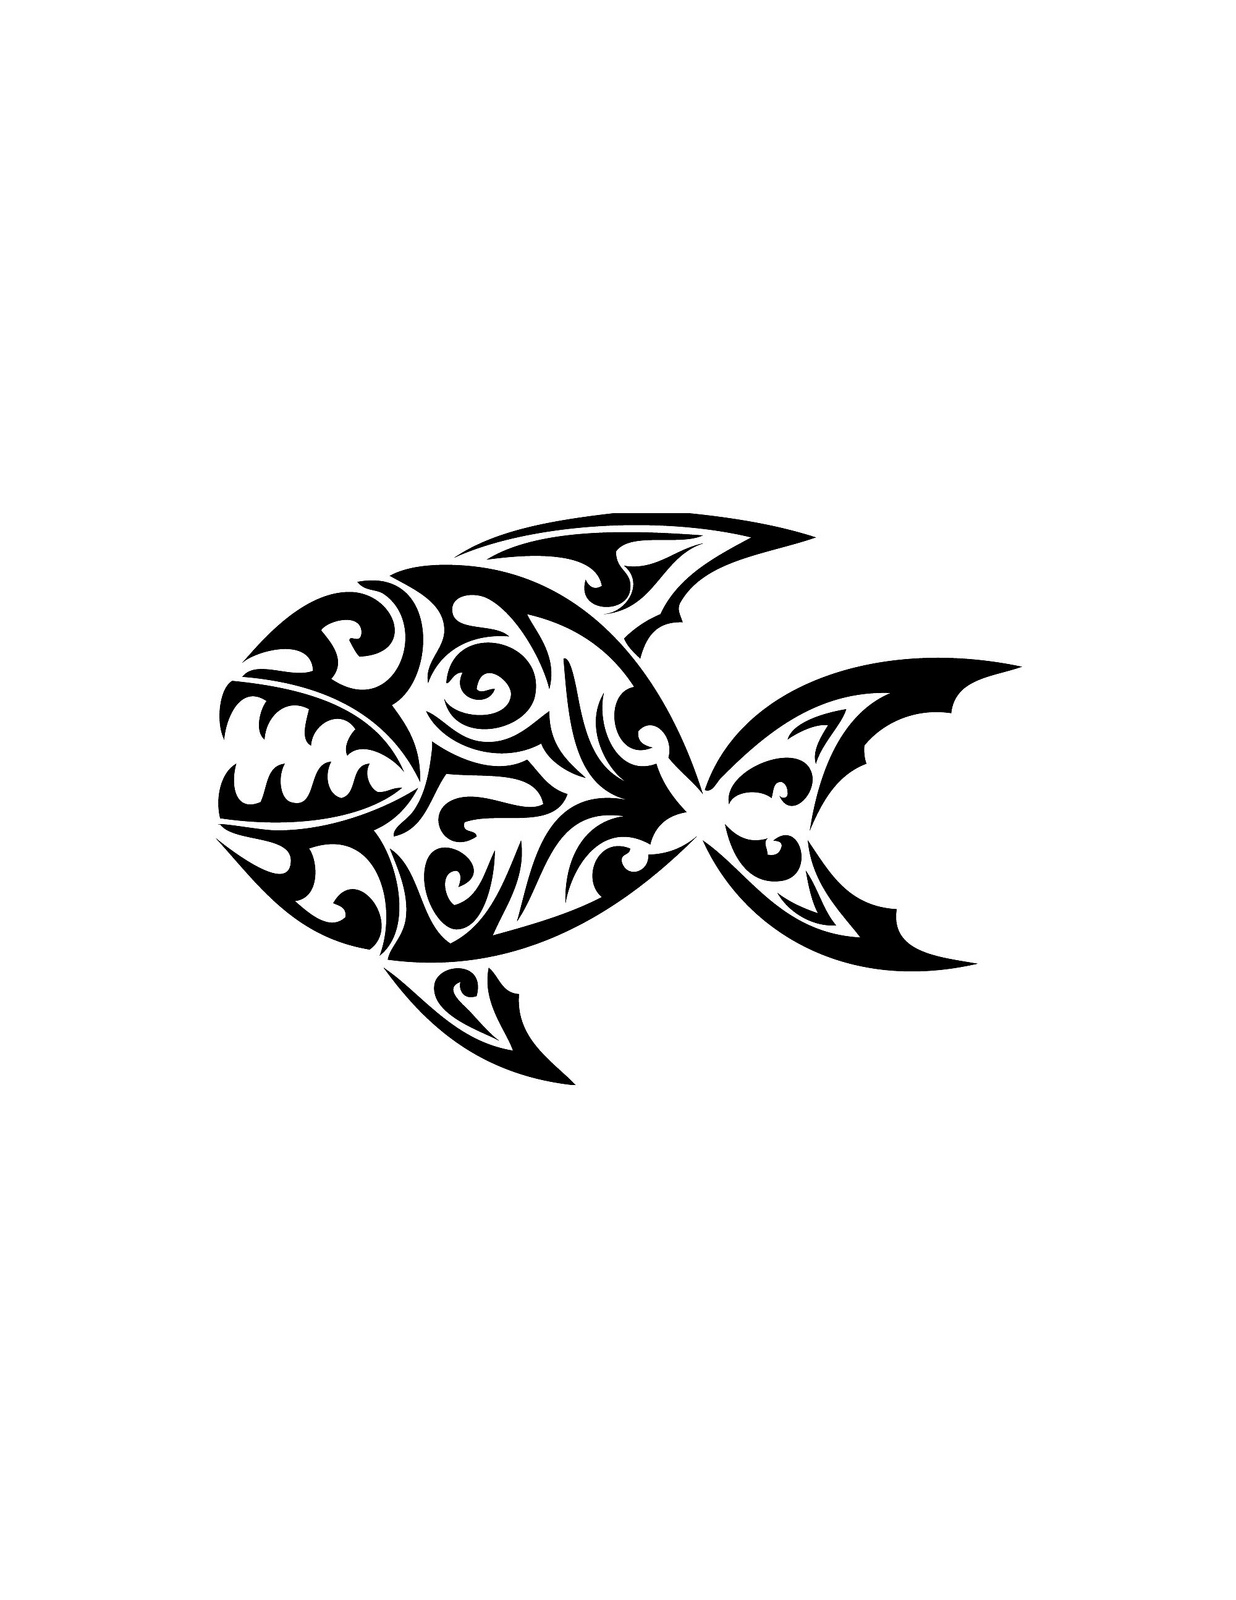 1236x1600 Tribal Koi Fish Tattoo Meaning Koi Fish Tattoo Meaning For Men